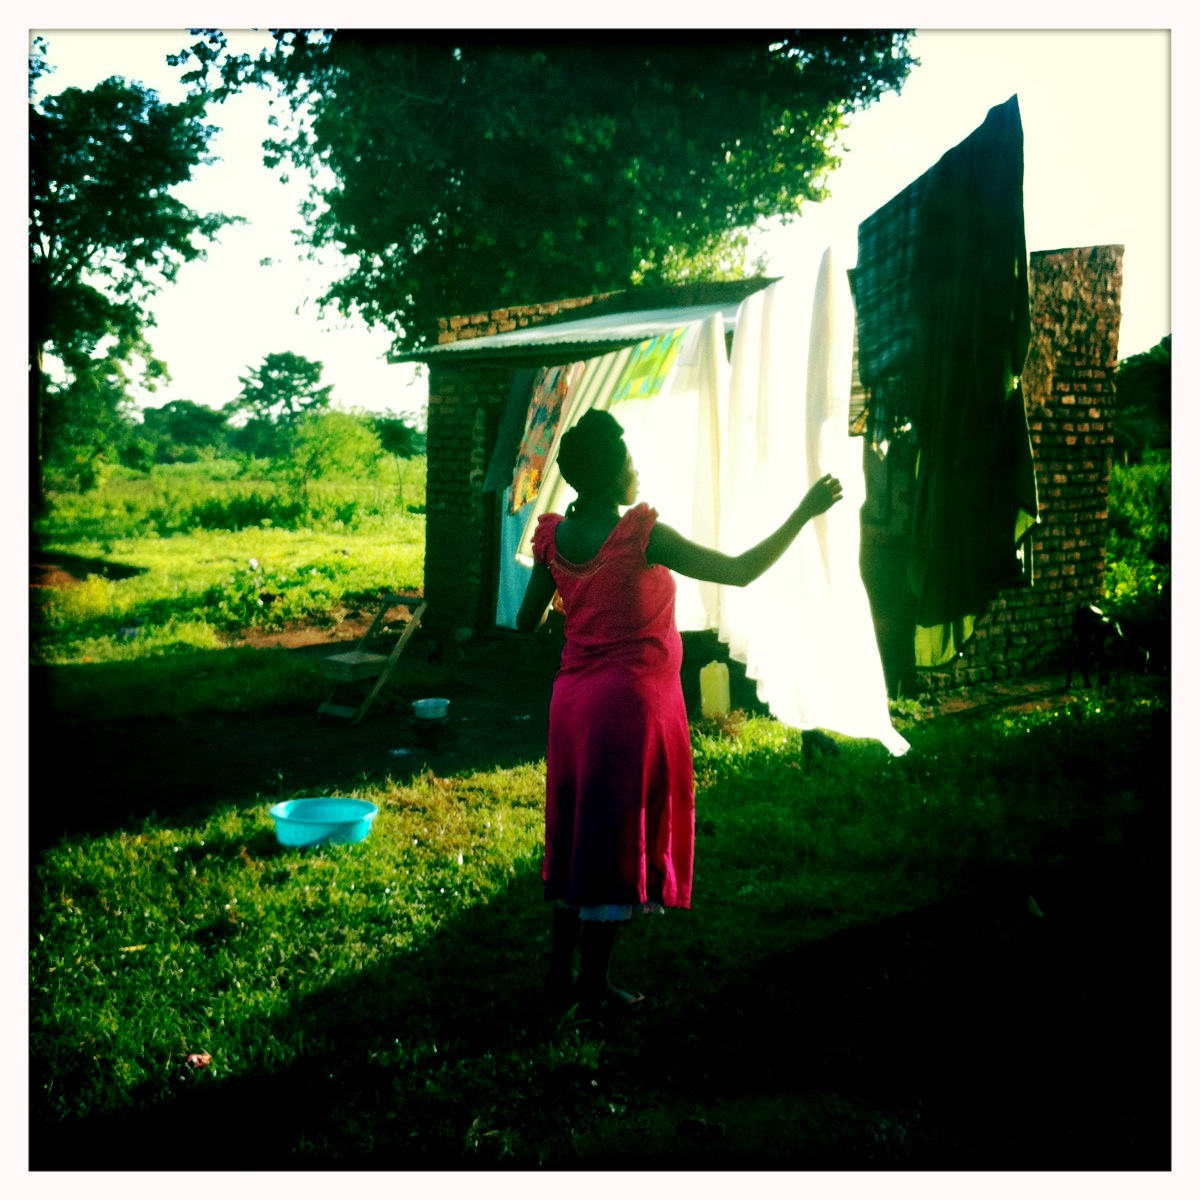 A woman hangs laundry in Takira, Uganda on May 29, 2012. Photo by Peter DiCampo.